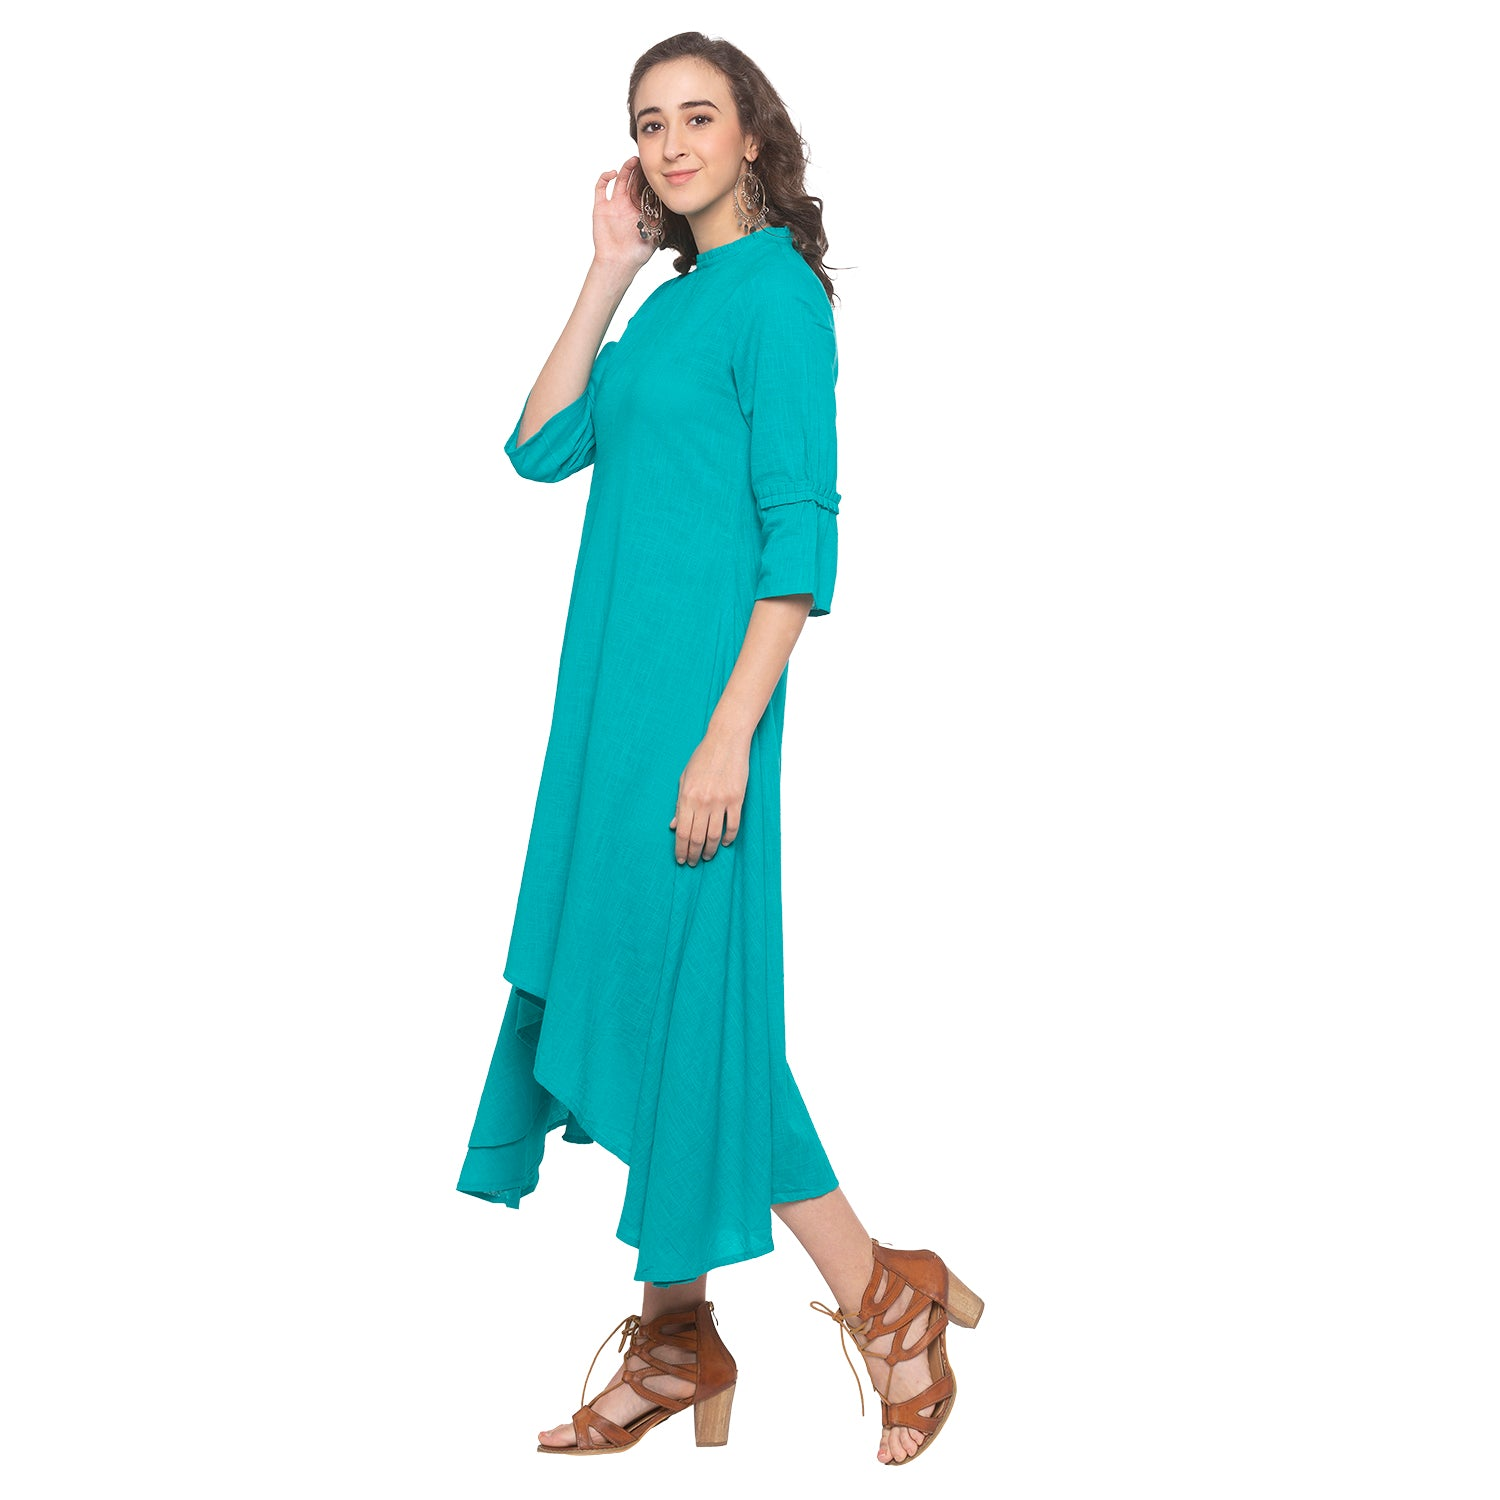 Teal Solid Dress-2